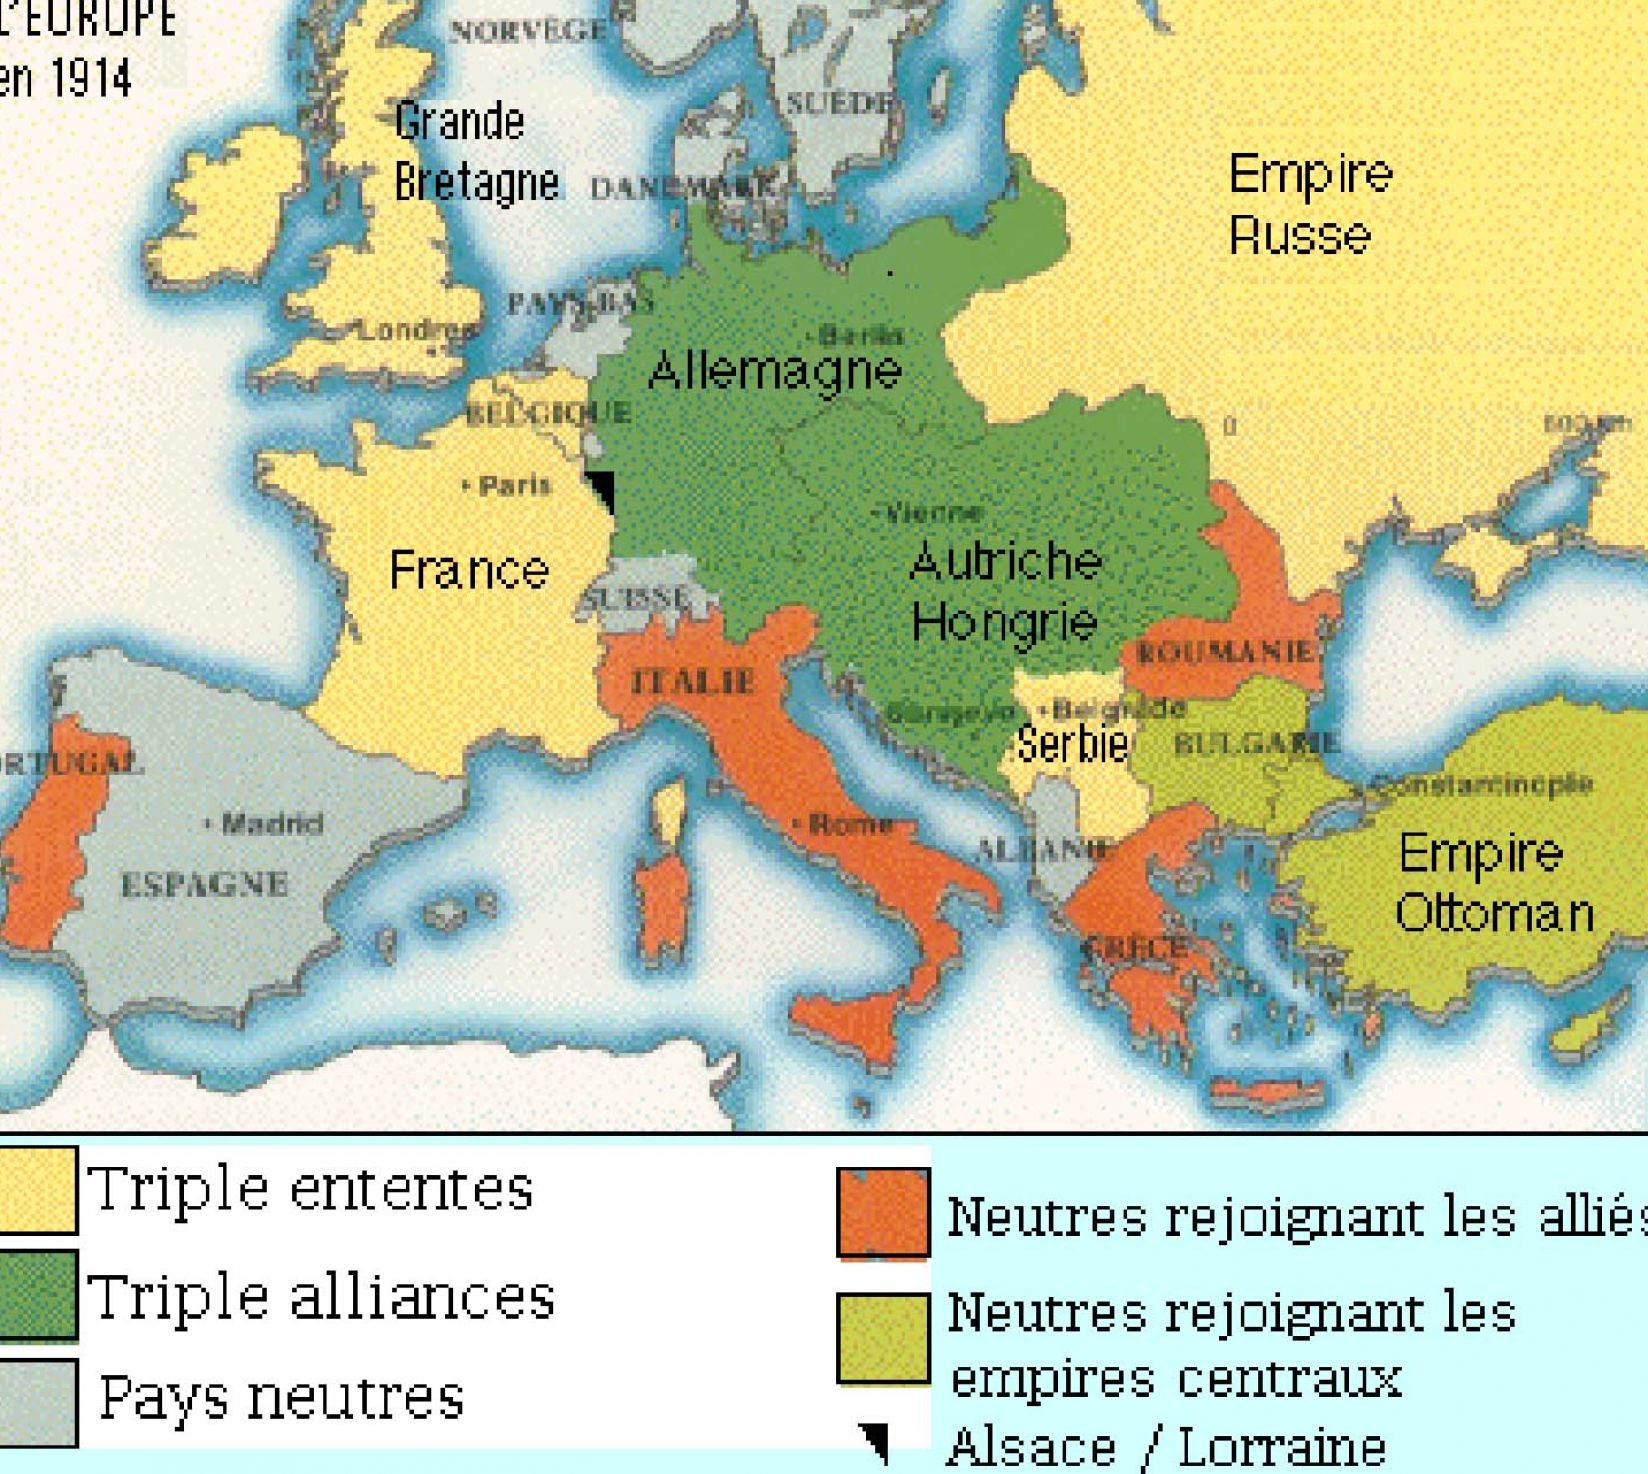 map of europe 1914 alliances